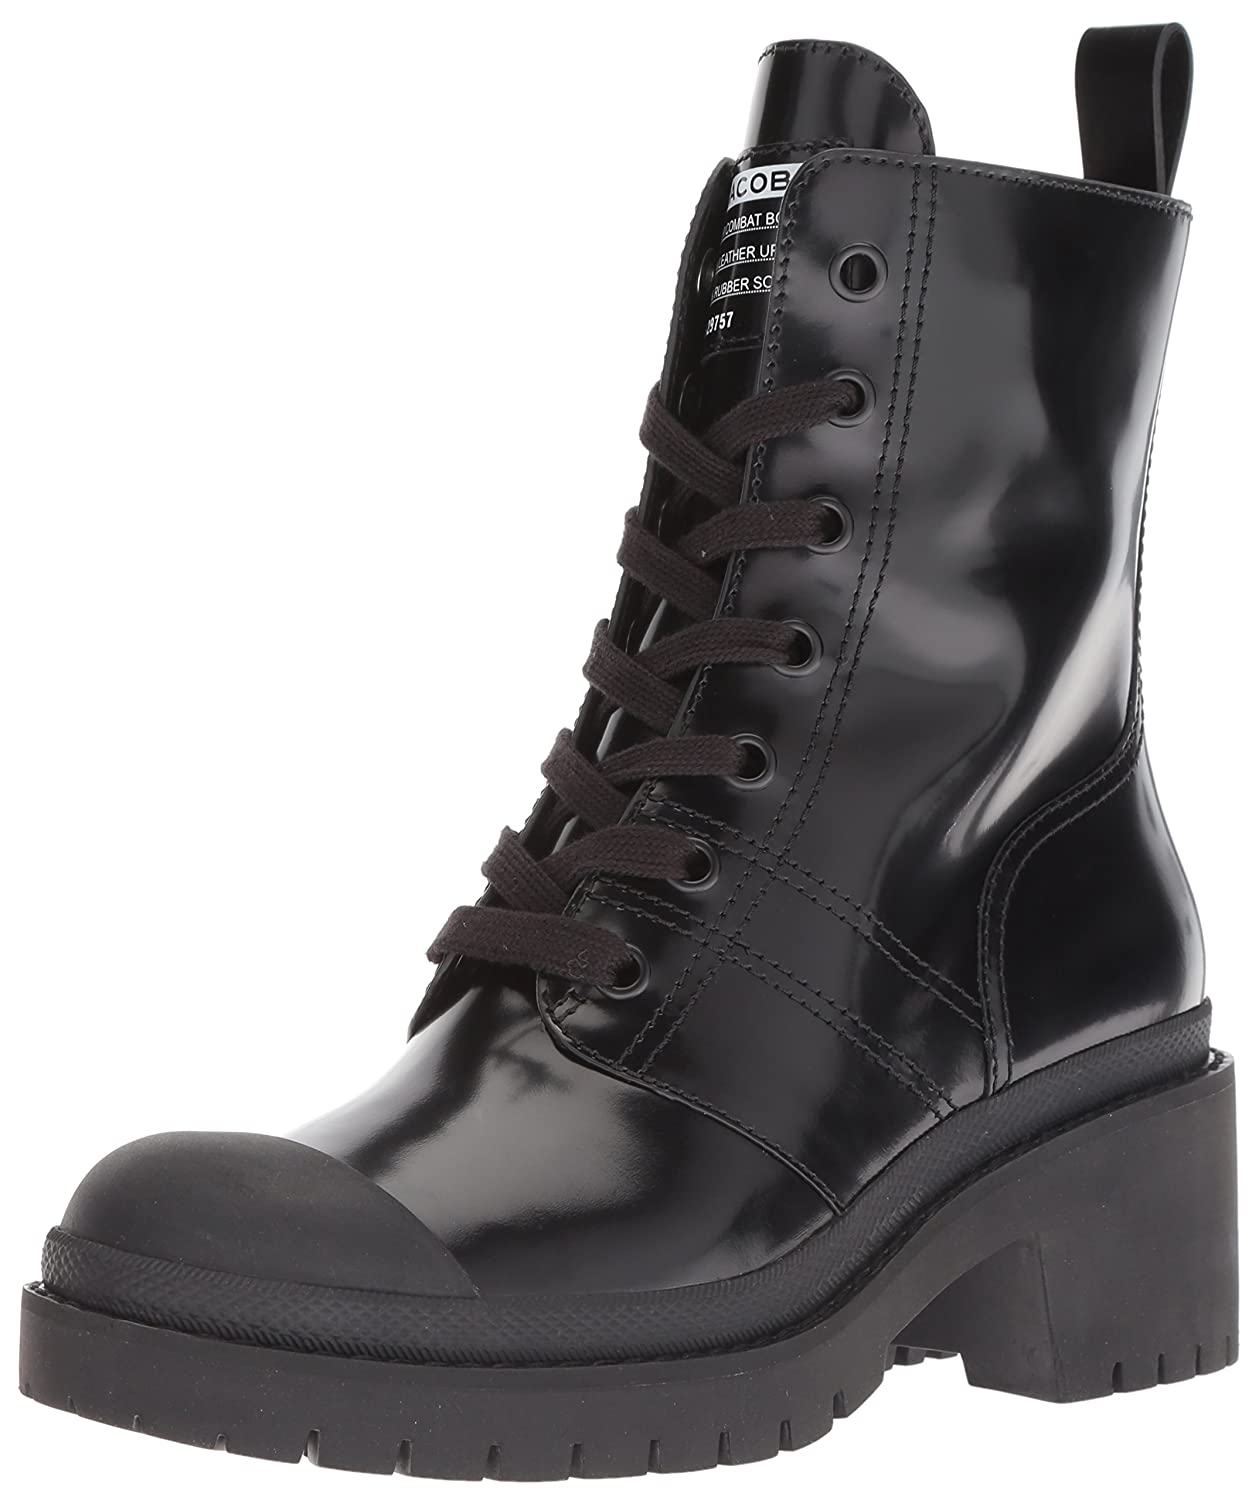 Marc Jacobs Women's Bristol Laced Ankle Boot B078F5NZ24 35 M EU (5 US)|Black 001